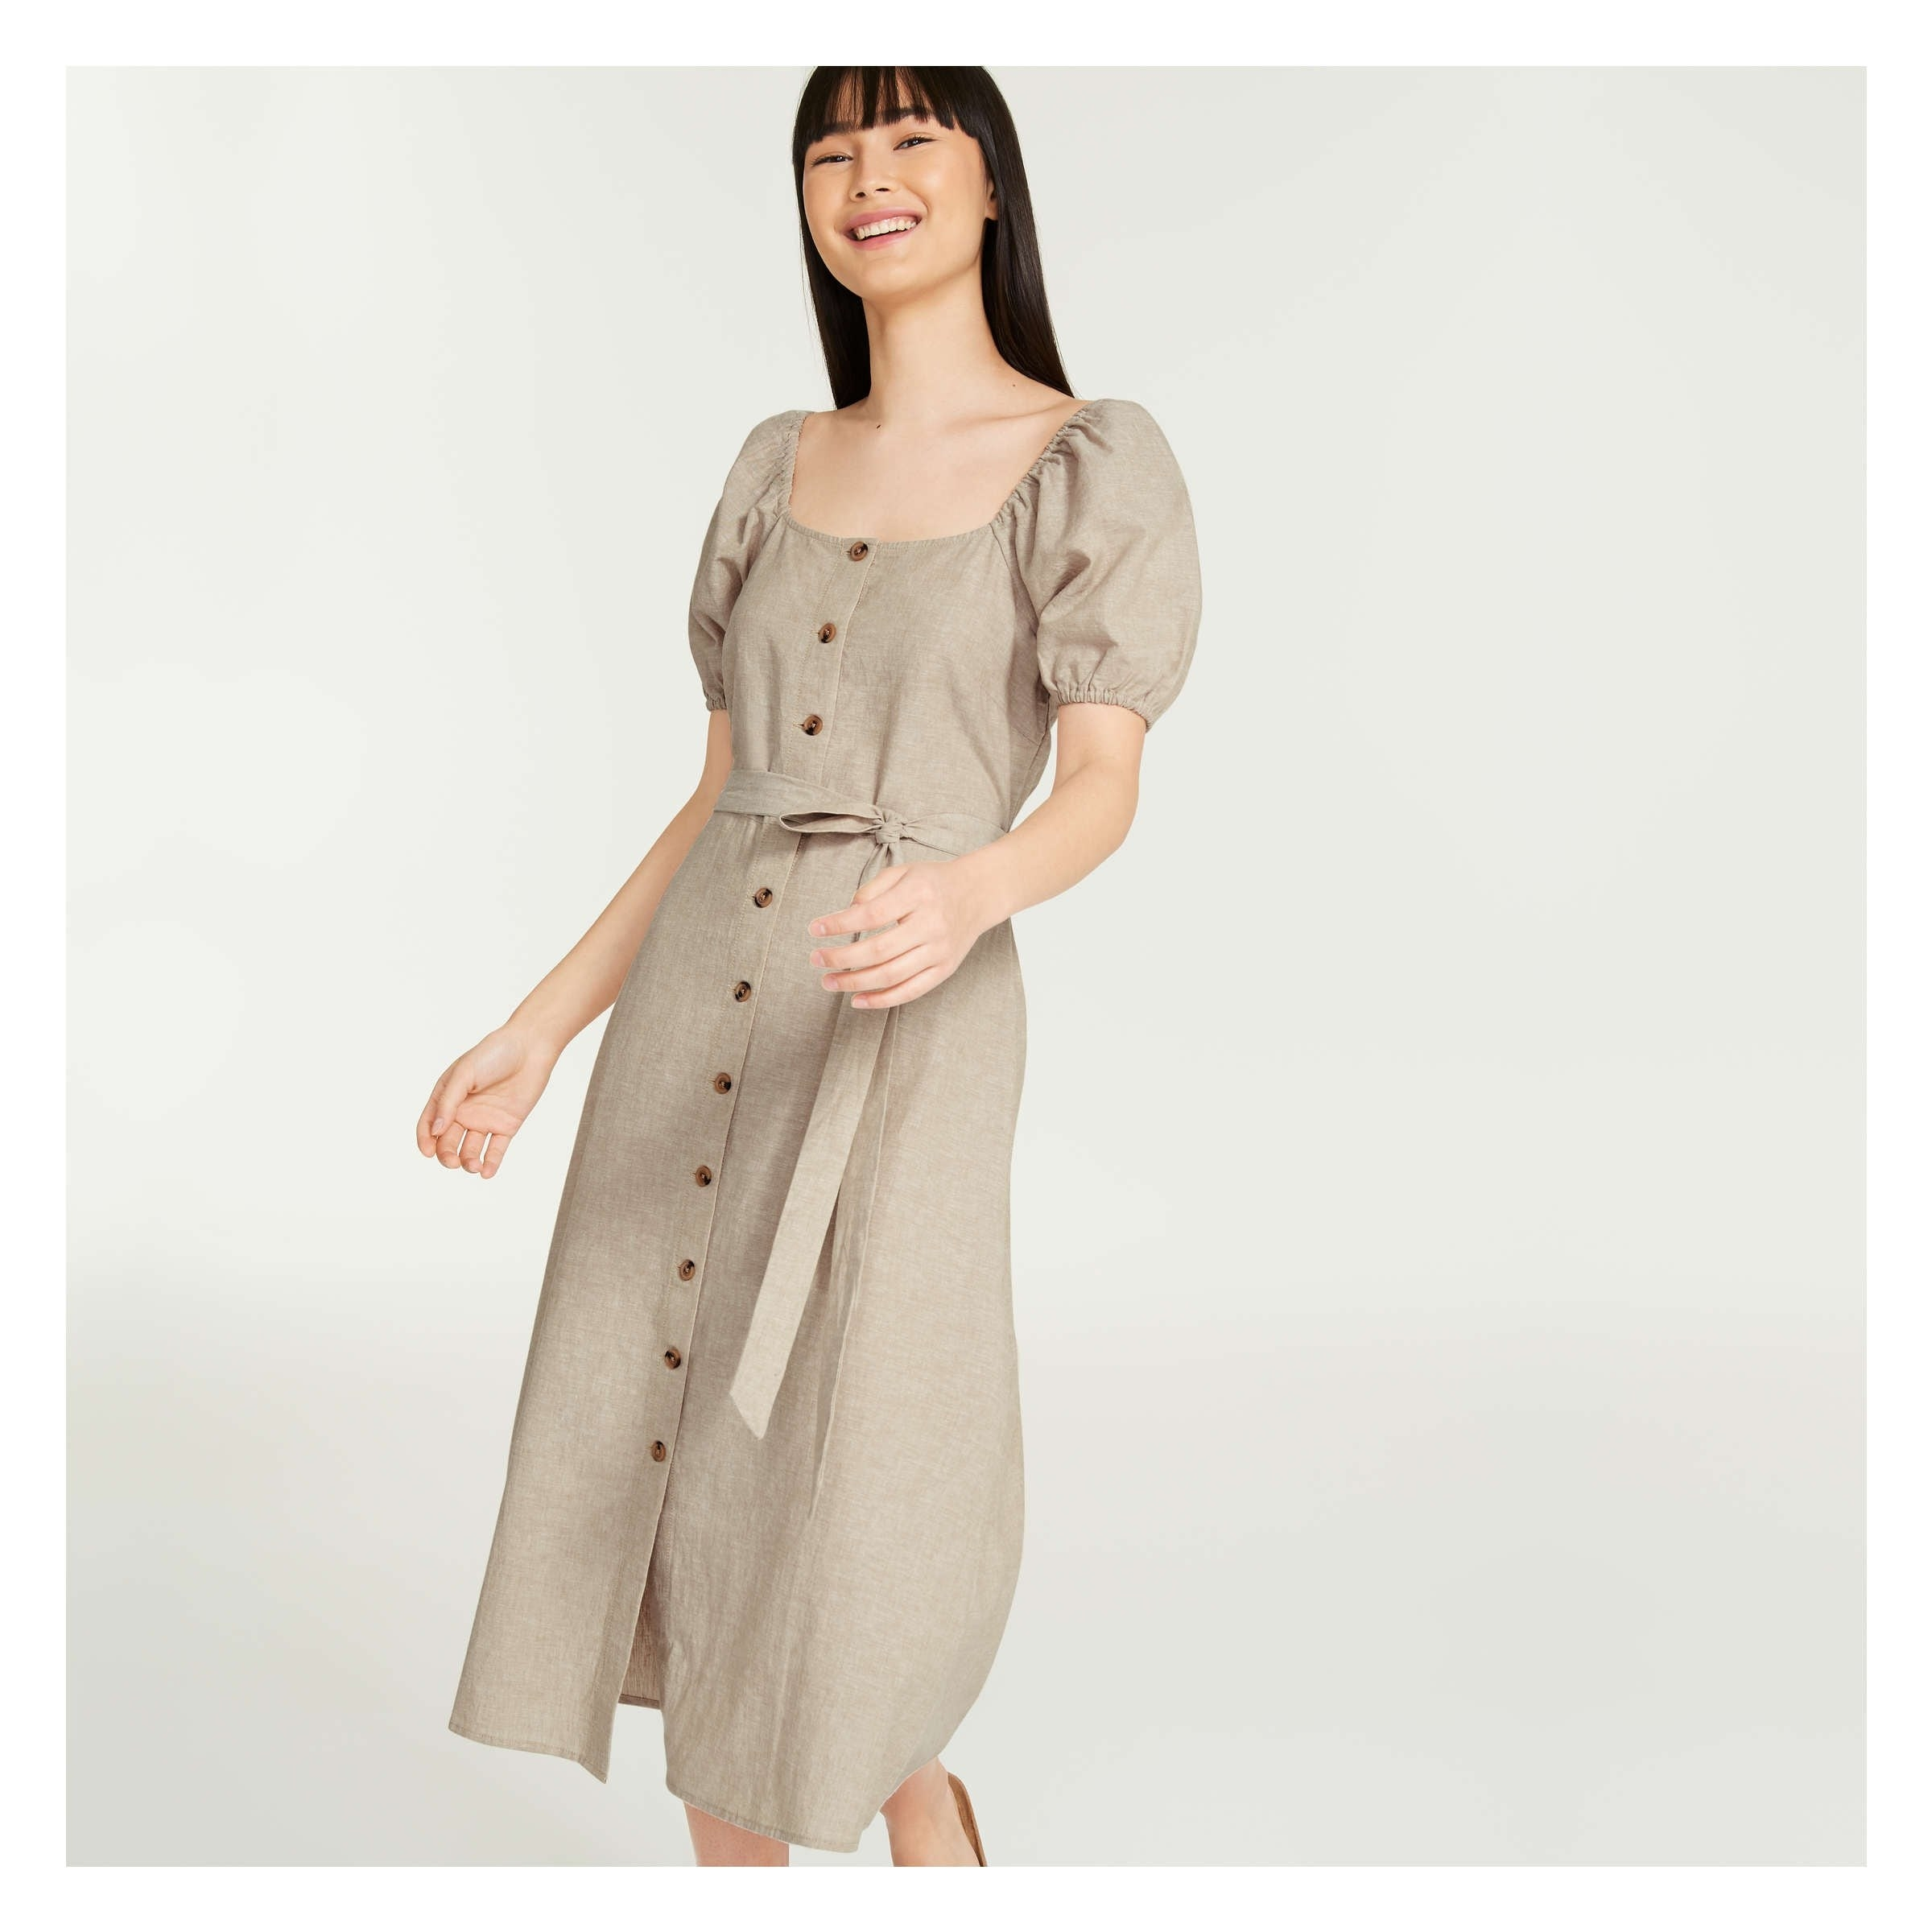 A person wearing the puff-sleeved button-up dress